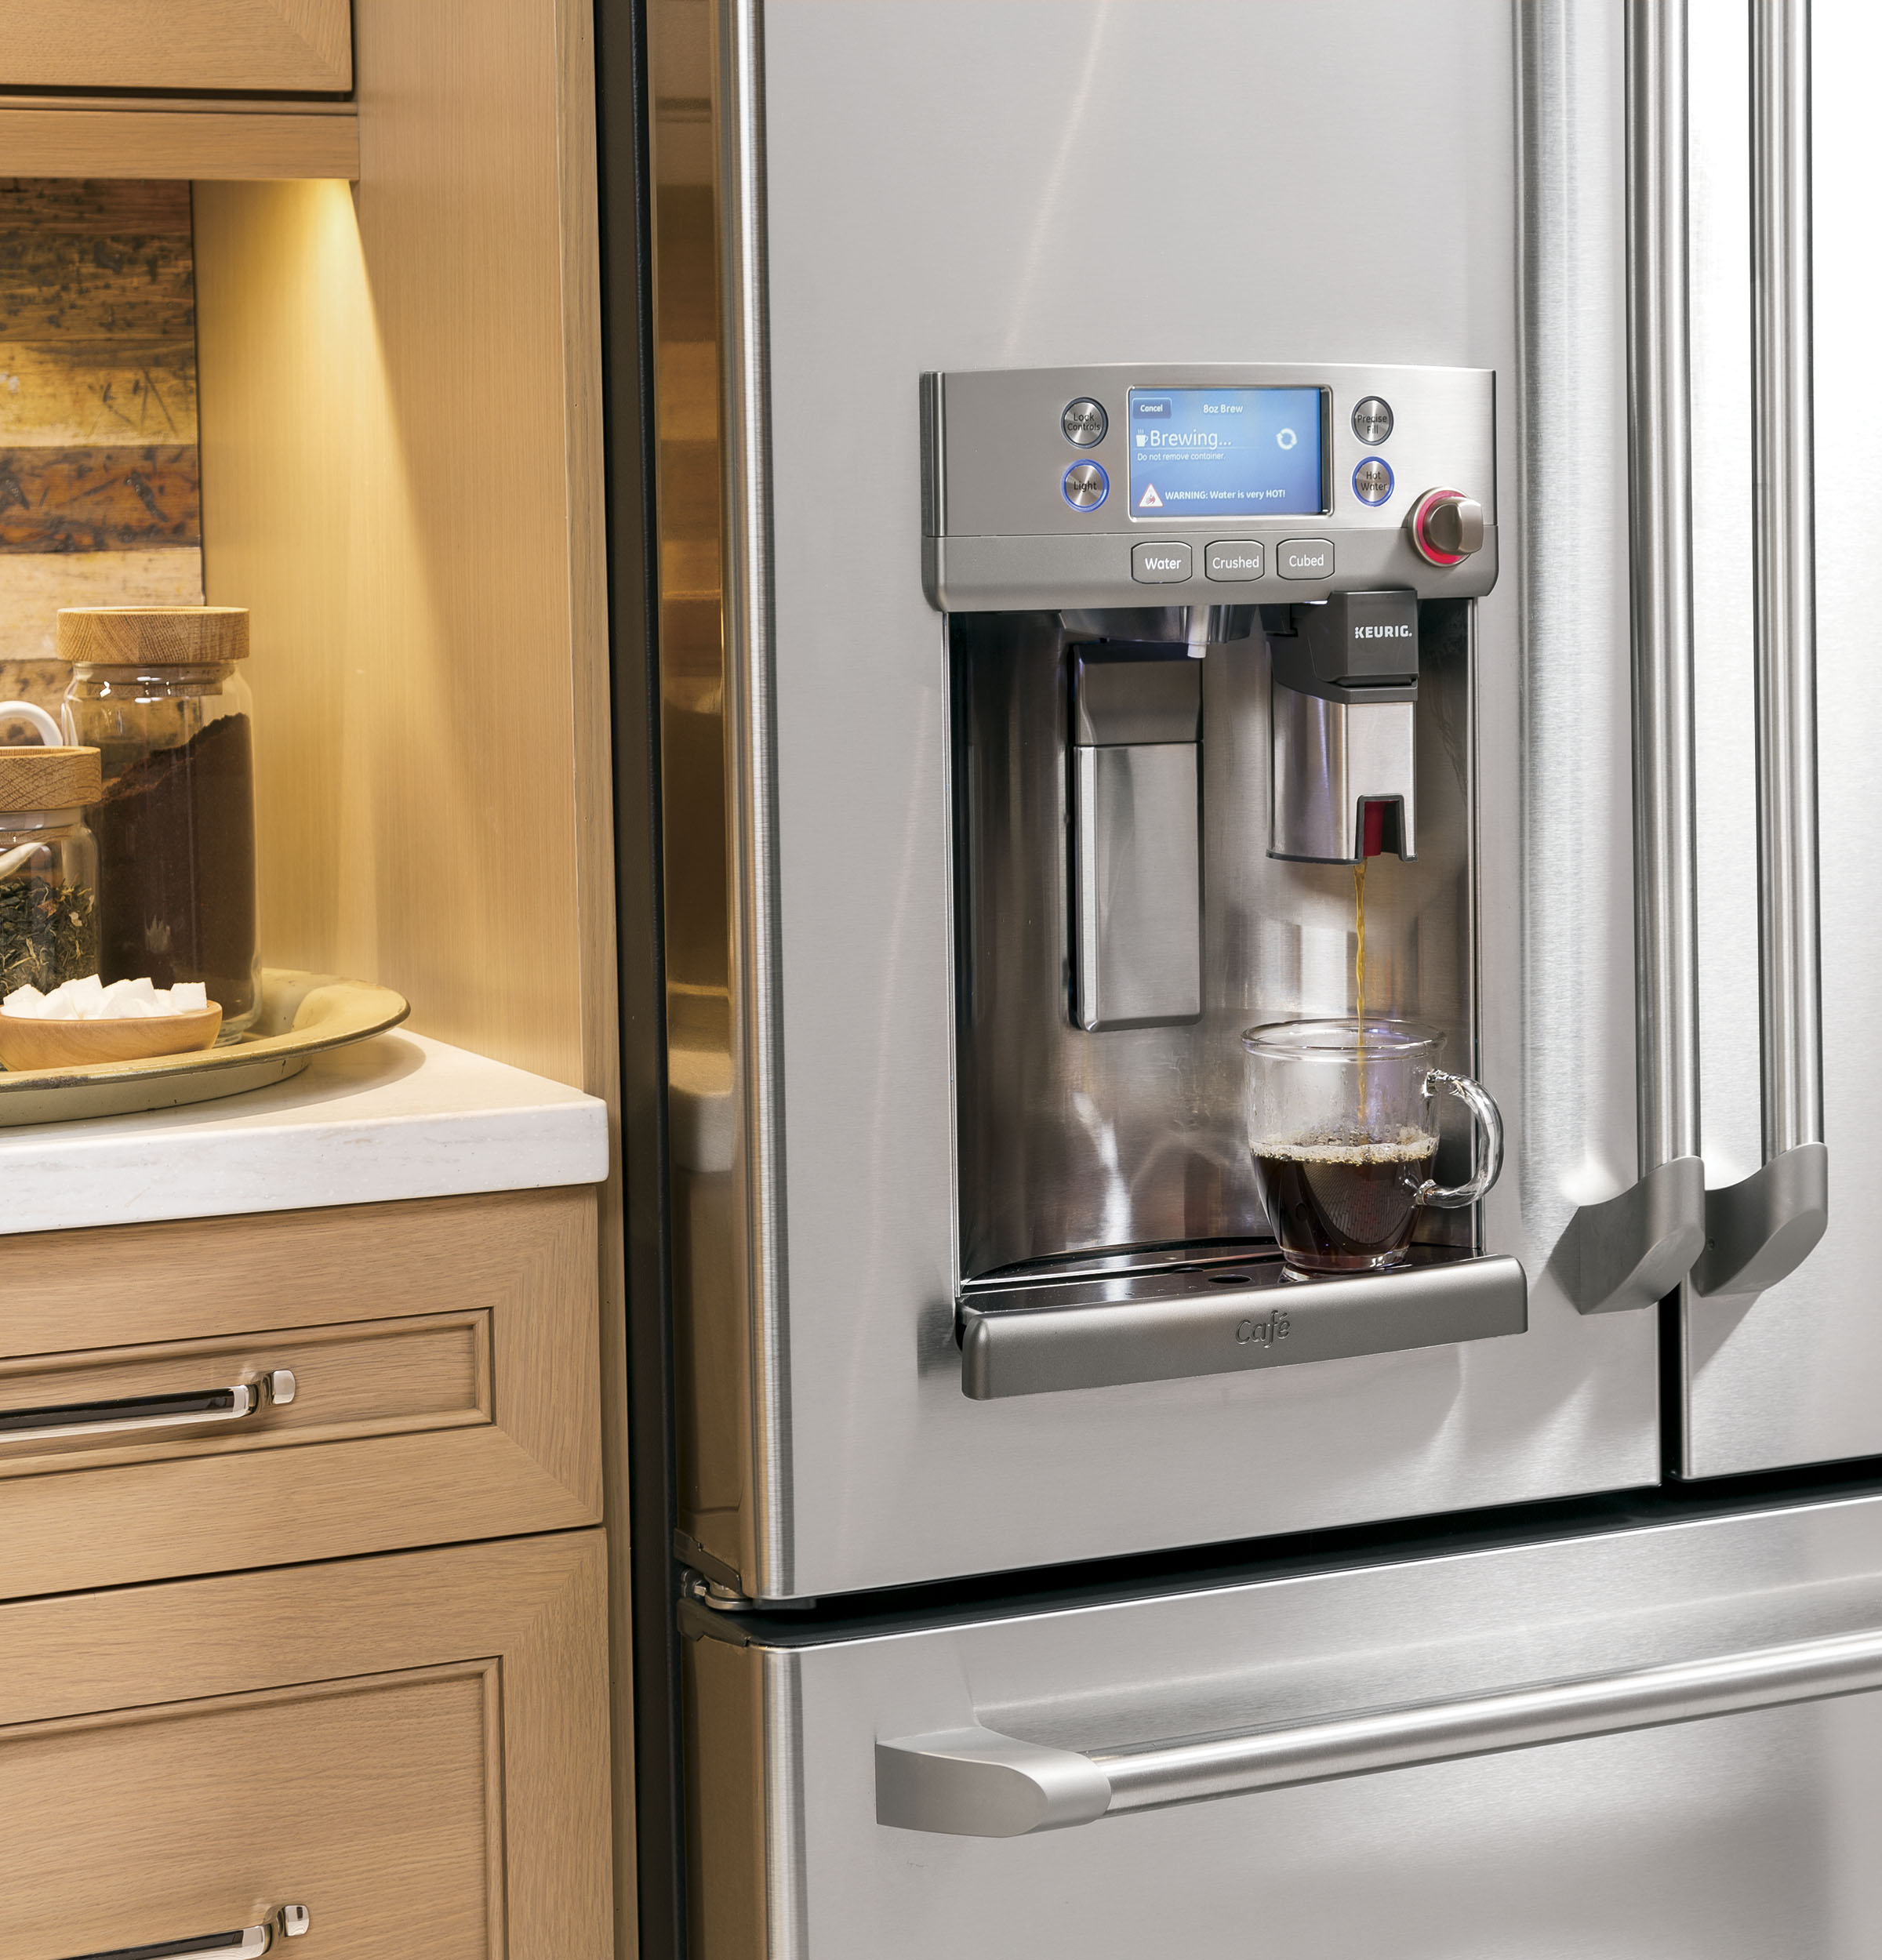 GE Café™ Series ENERGY STAR® 22.2 Cu. Ft. Counter-Depth French-Door Refrigerator with Keurig® K-Cup® Brewing System